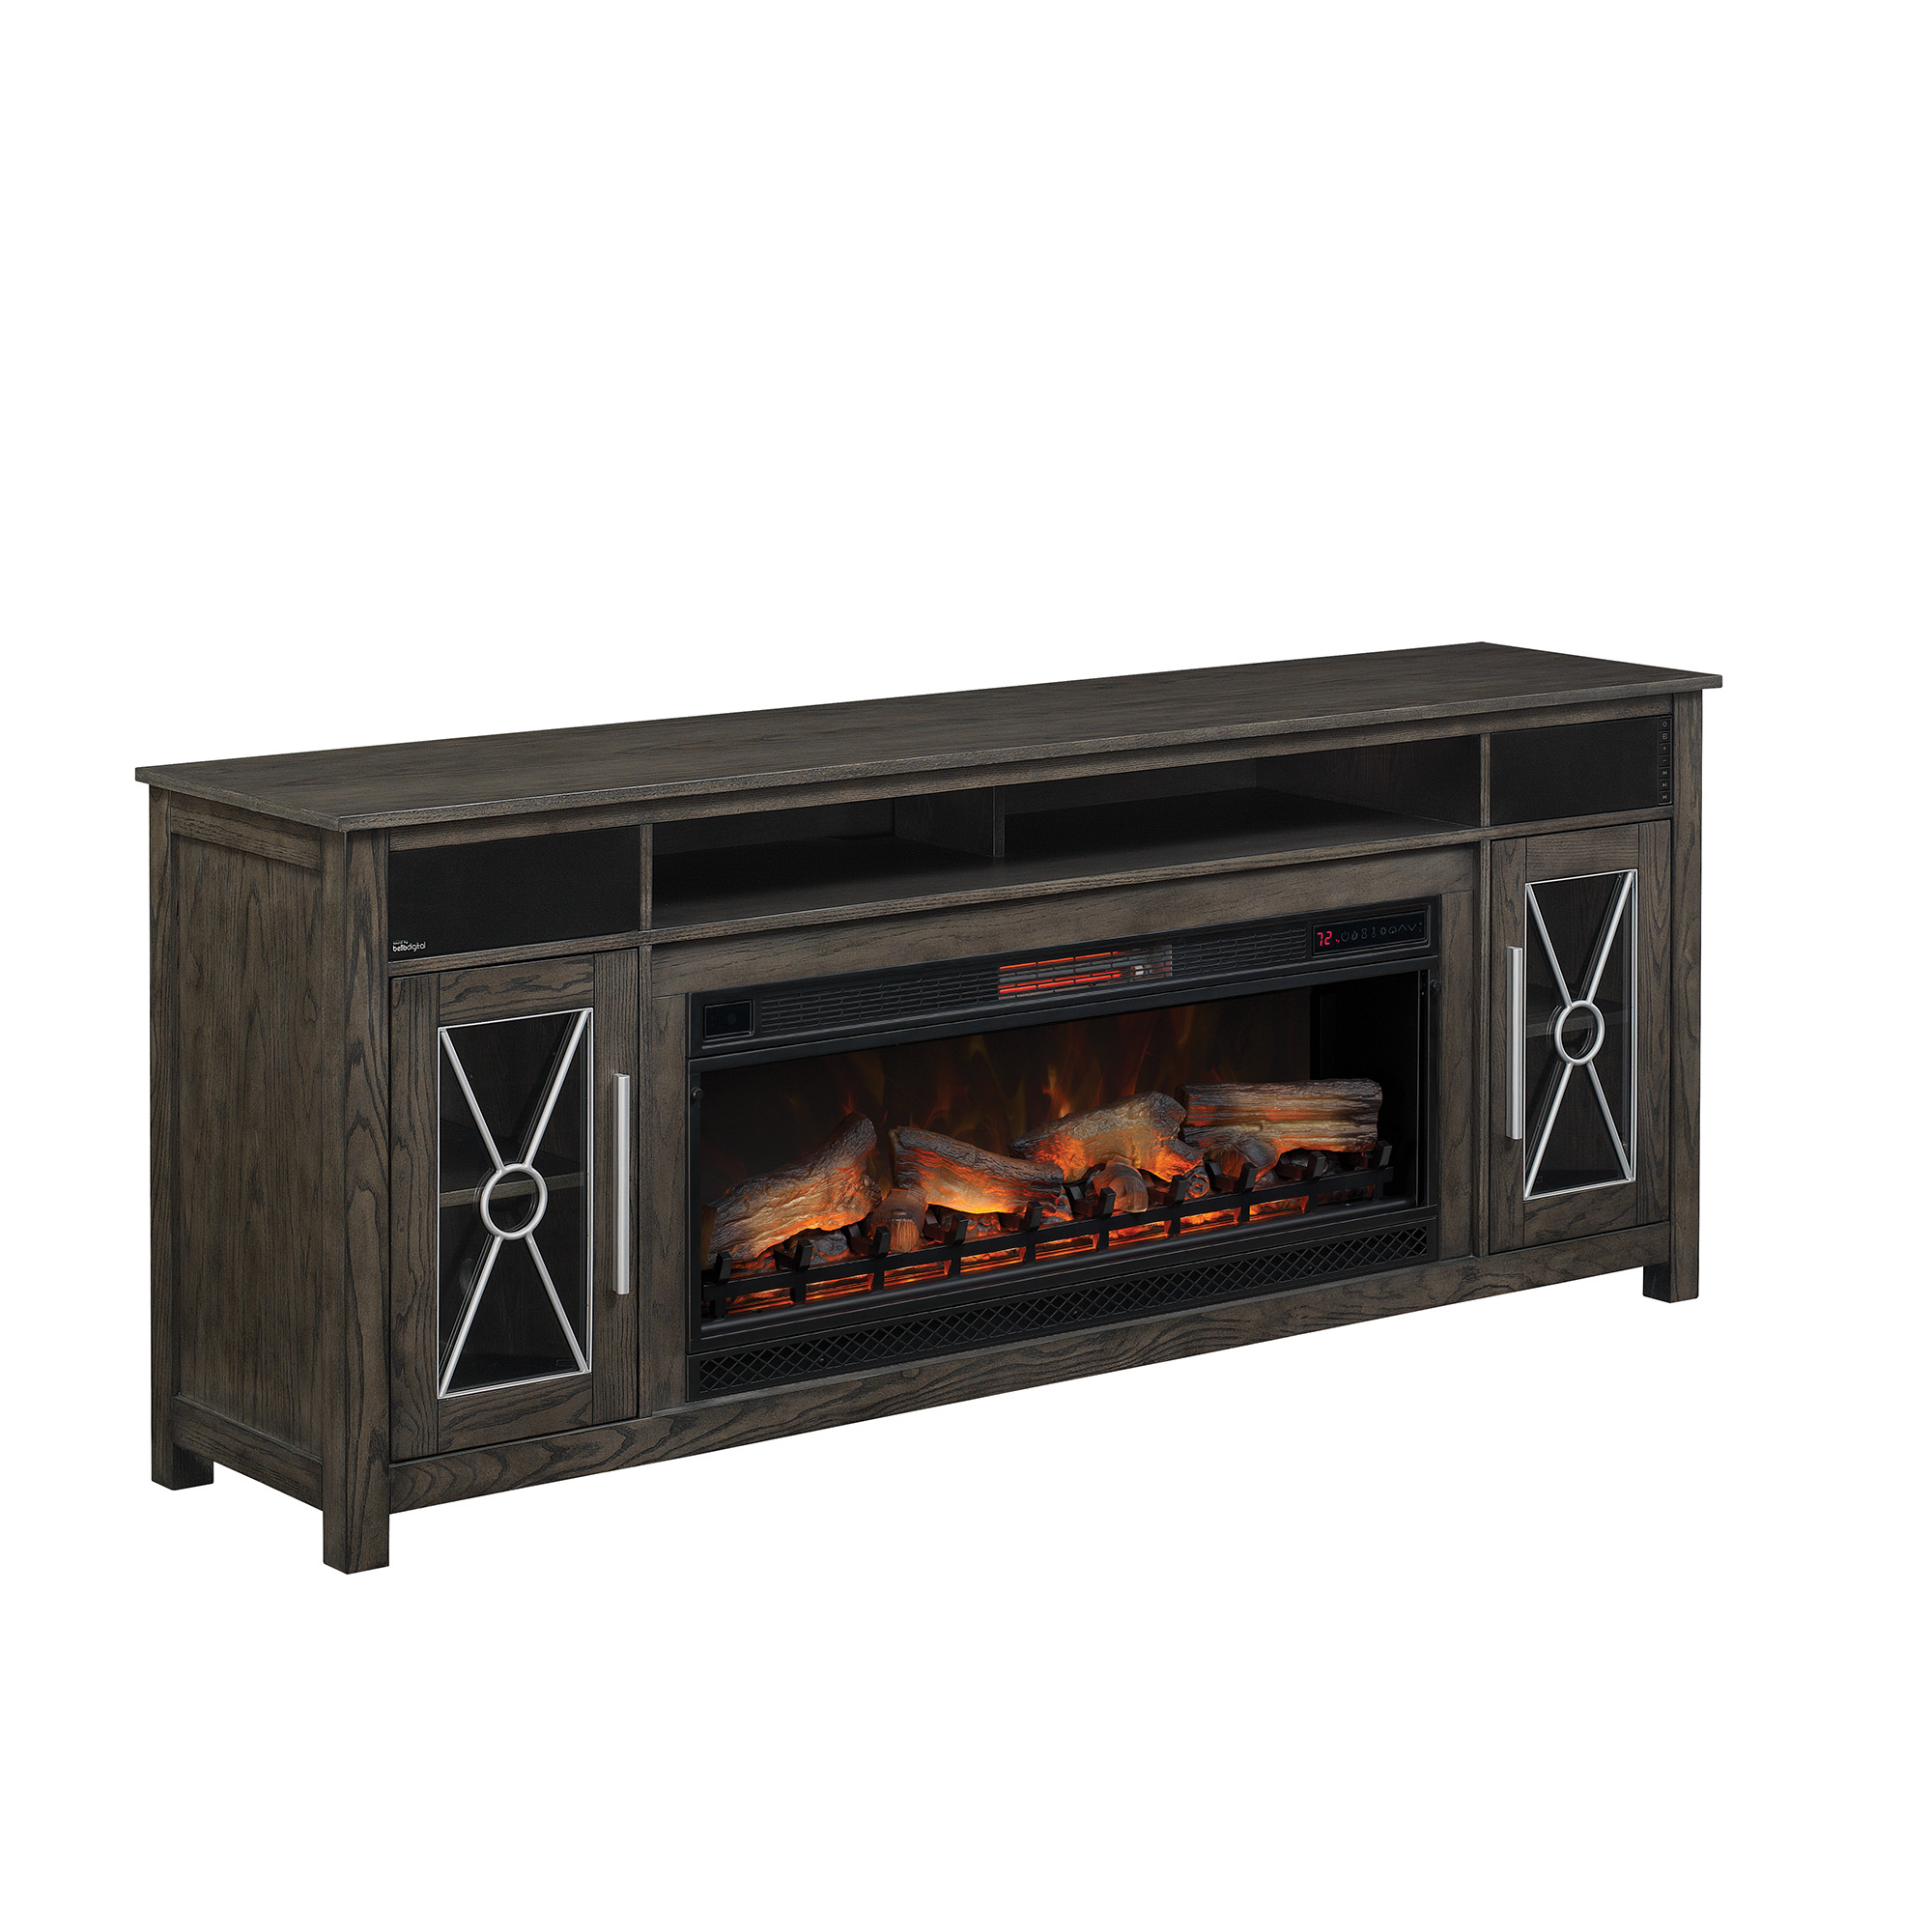 76 6 Quot Heathrow Tifton Oak Infrared Media Electric Fireplace